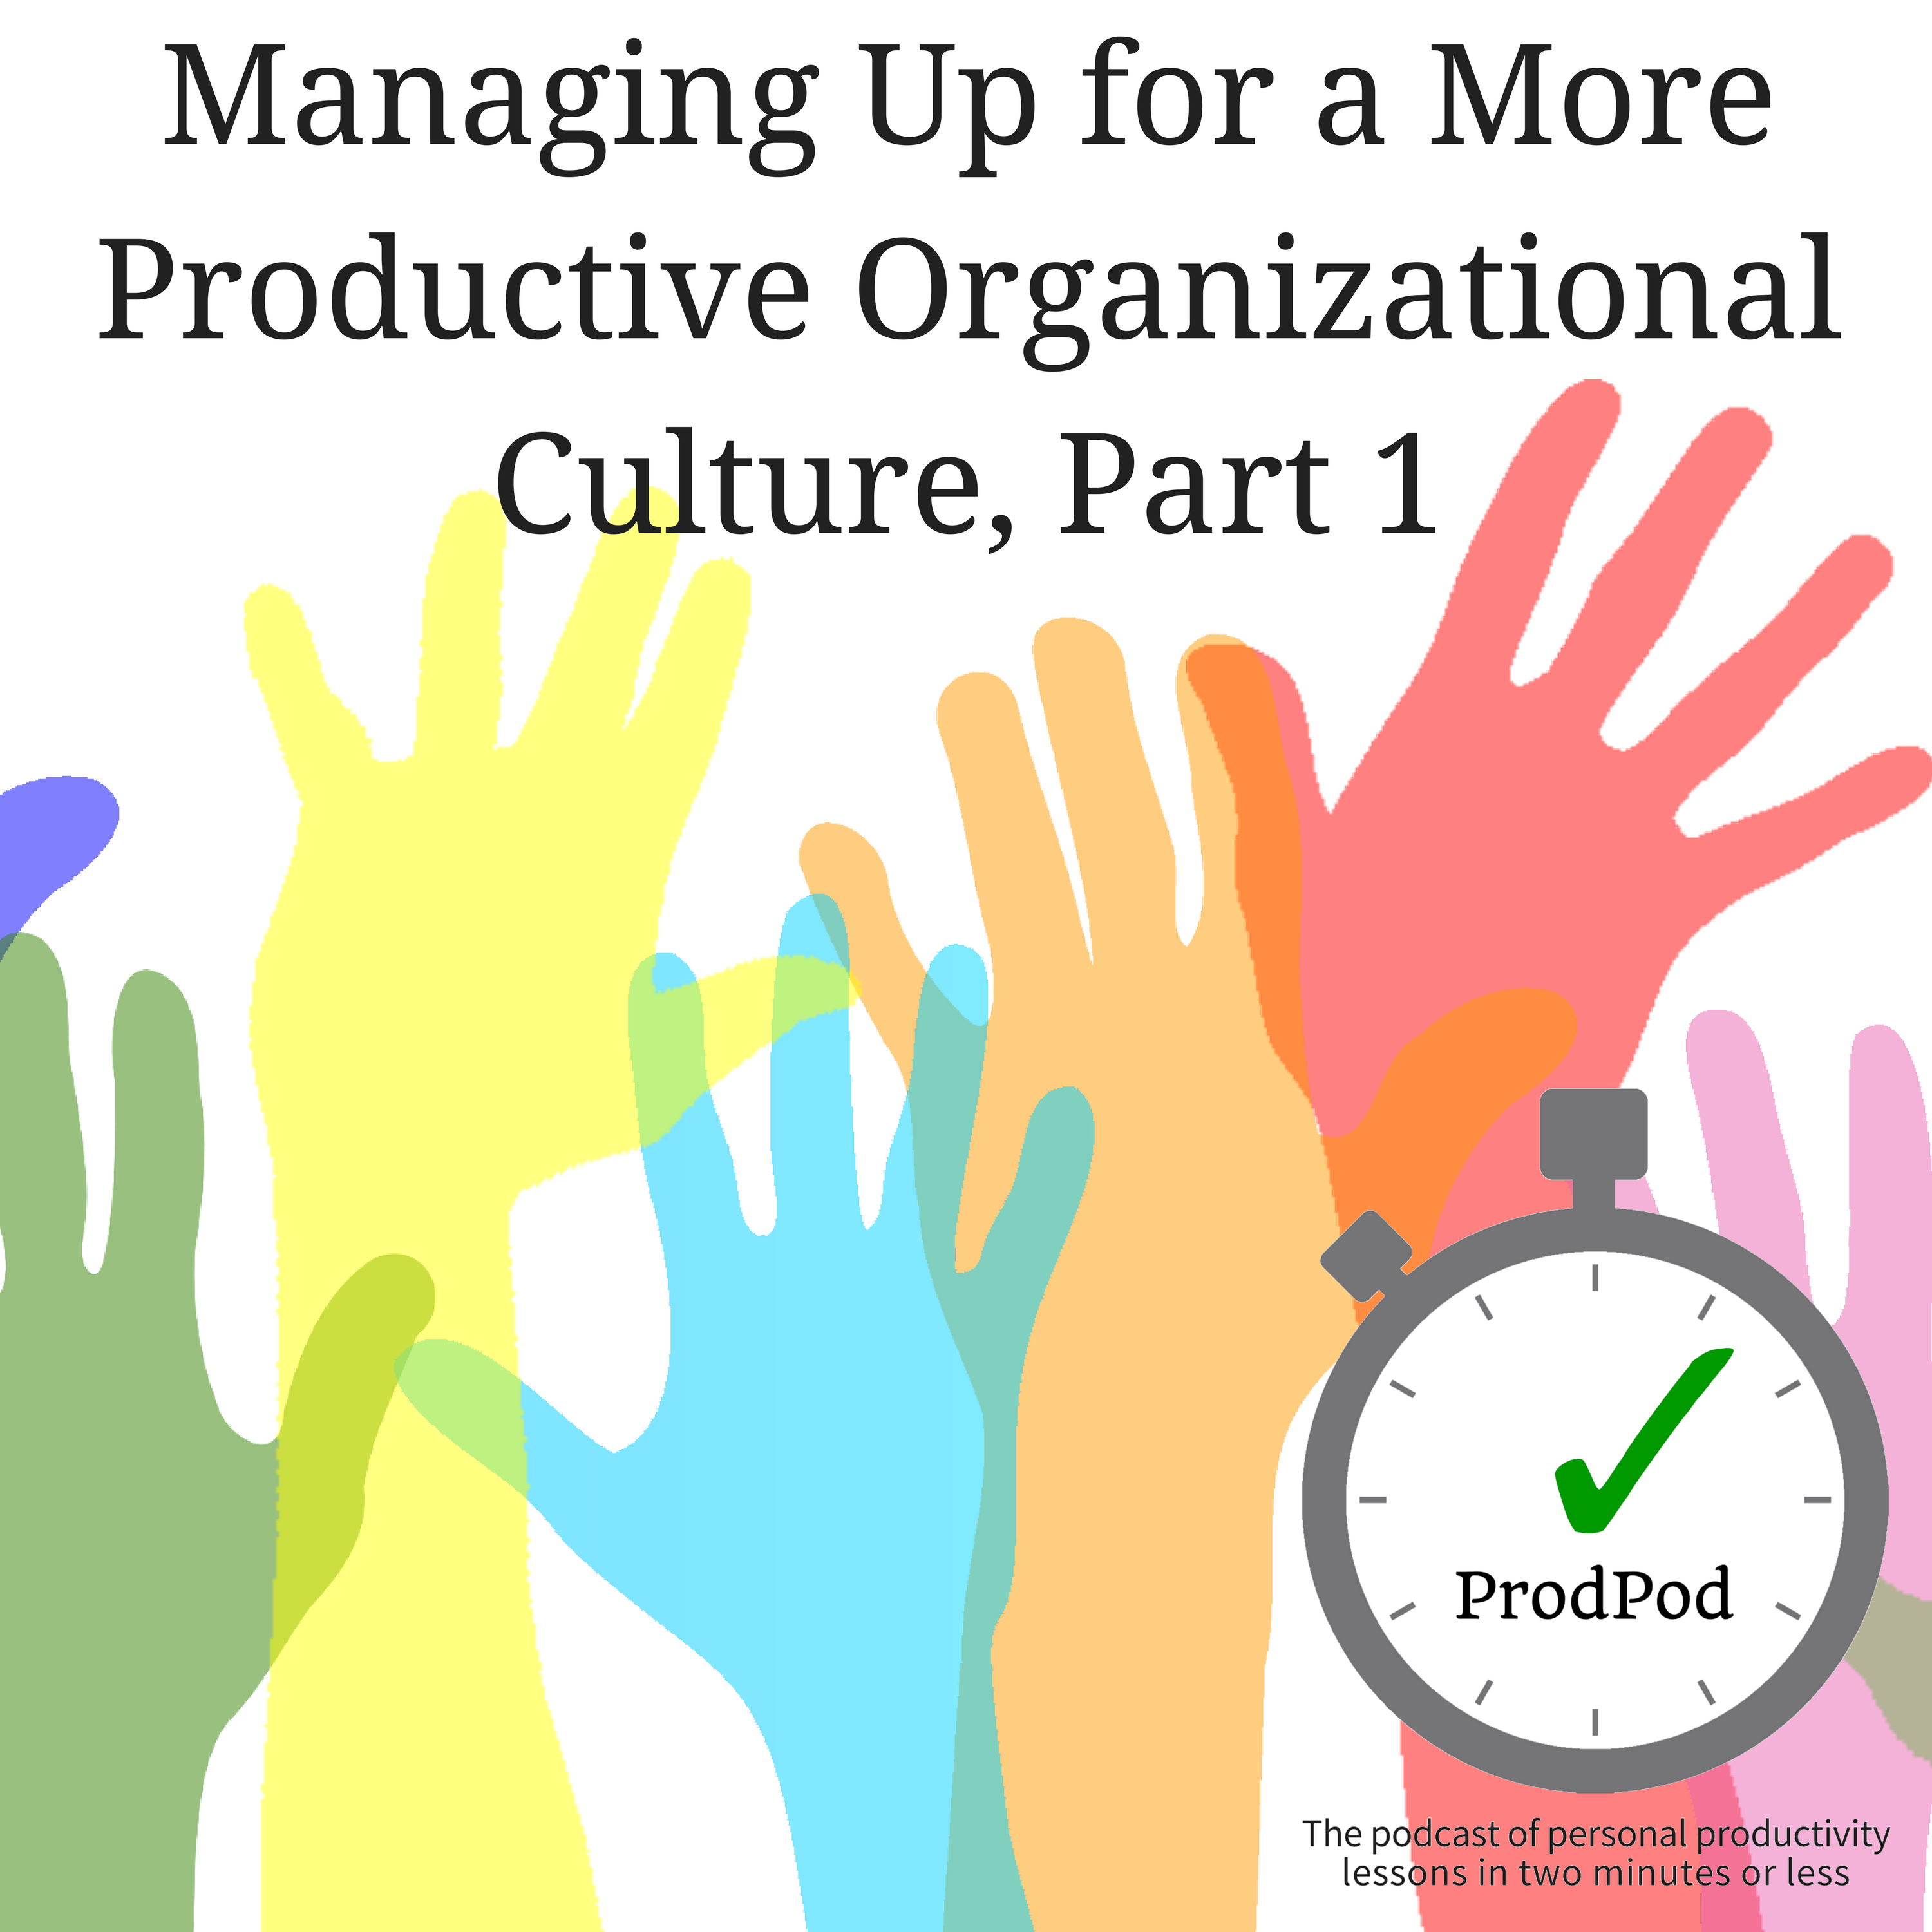 ProdPod: Episode 102 -- Managing Up for a More Productive Organizational Culture, Part 1